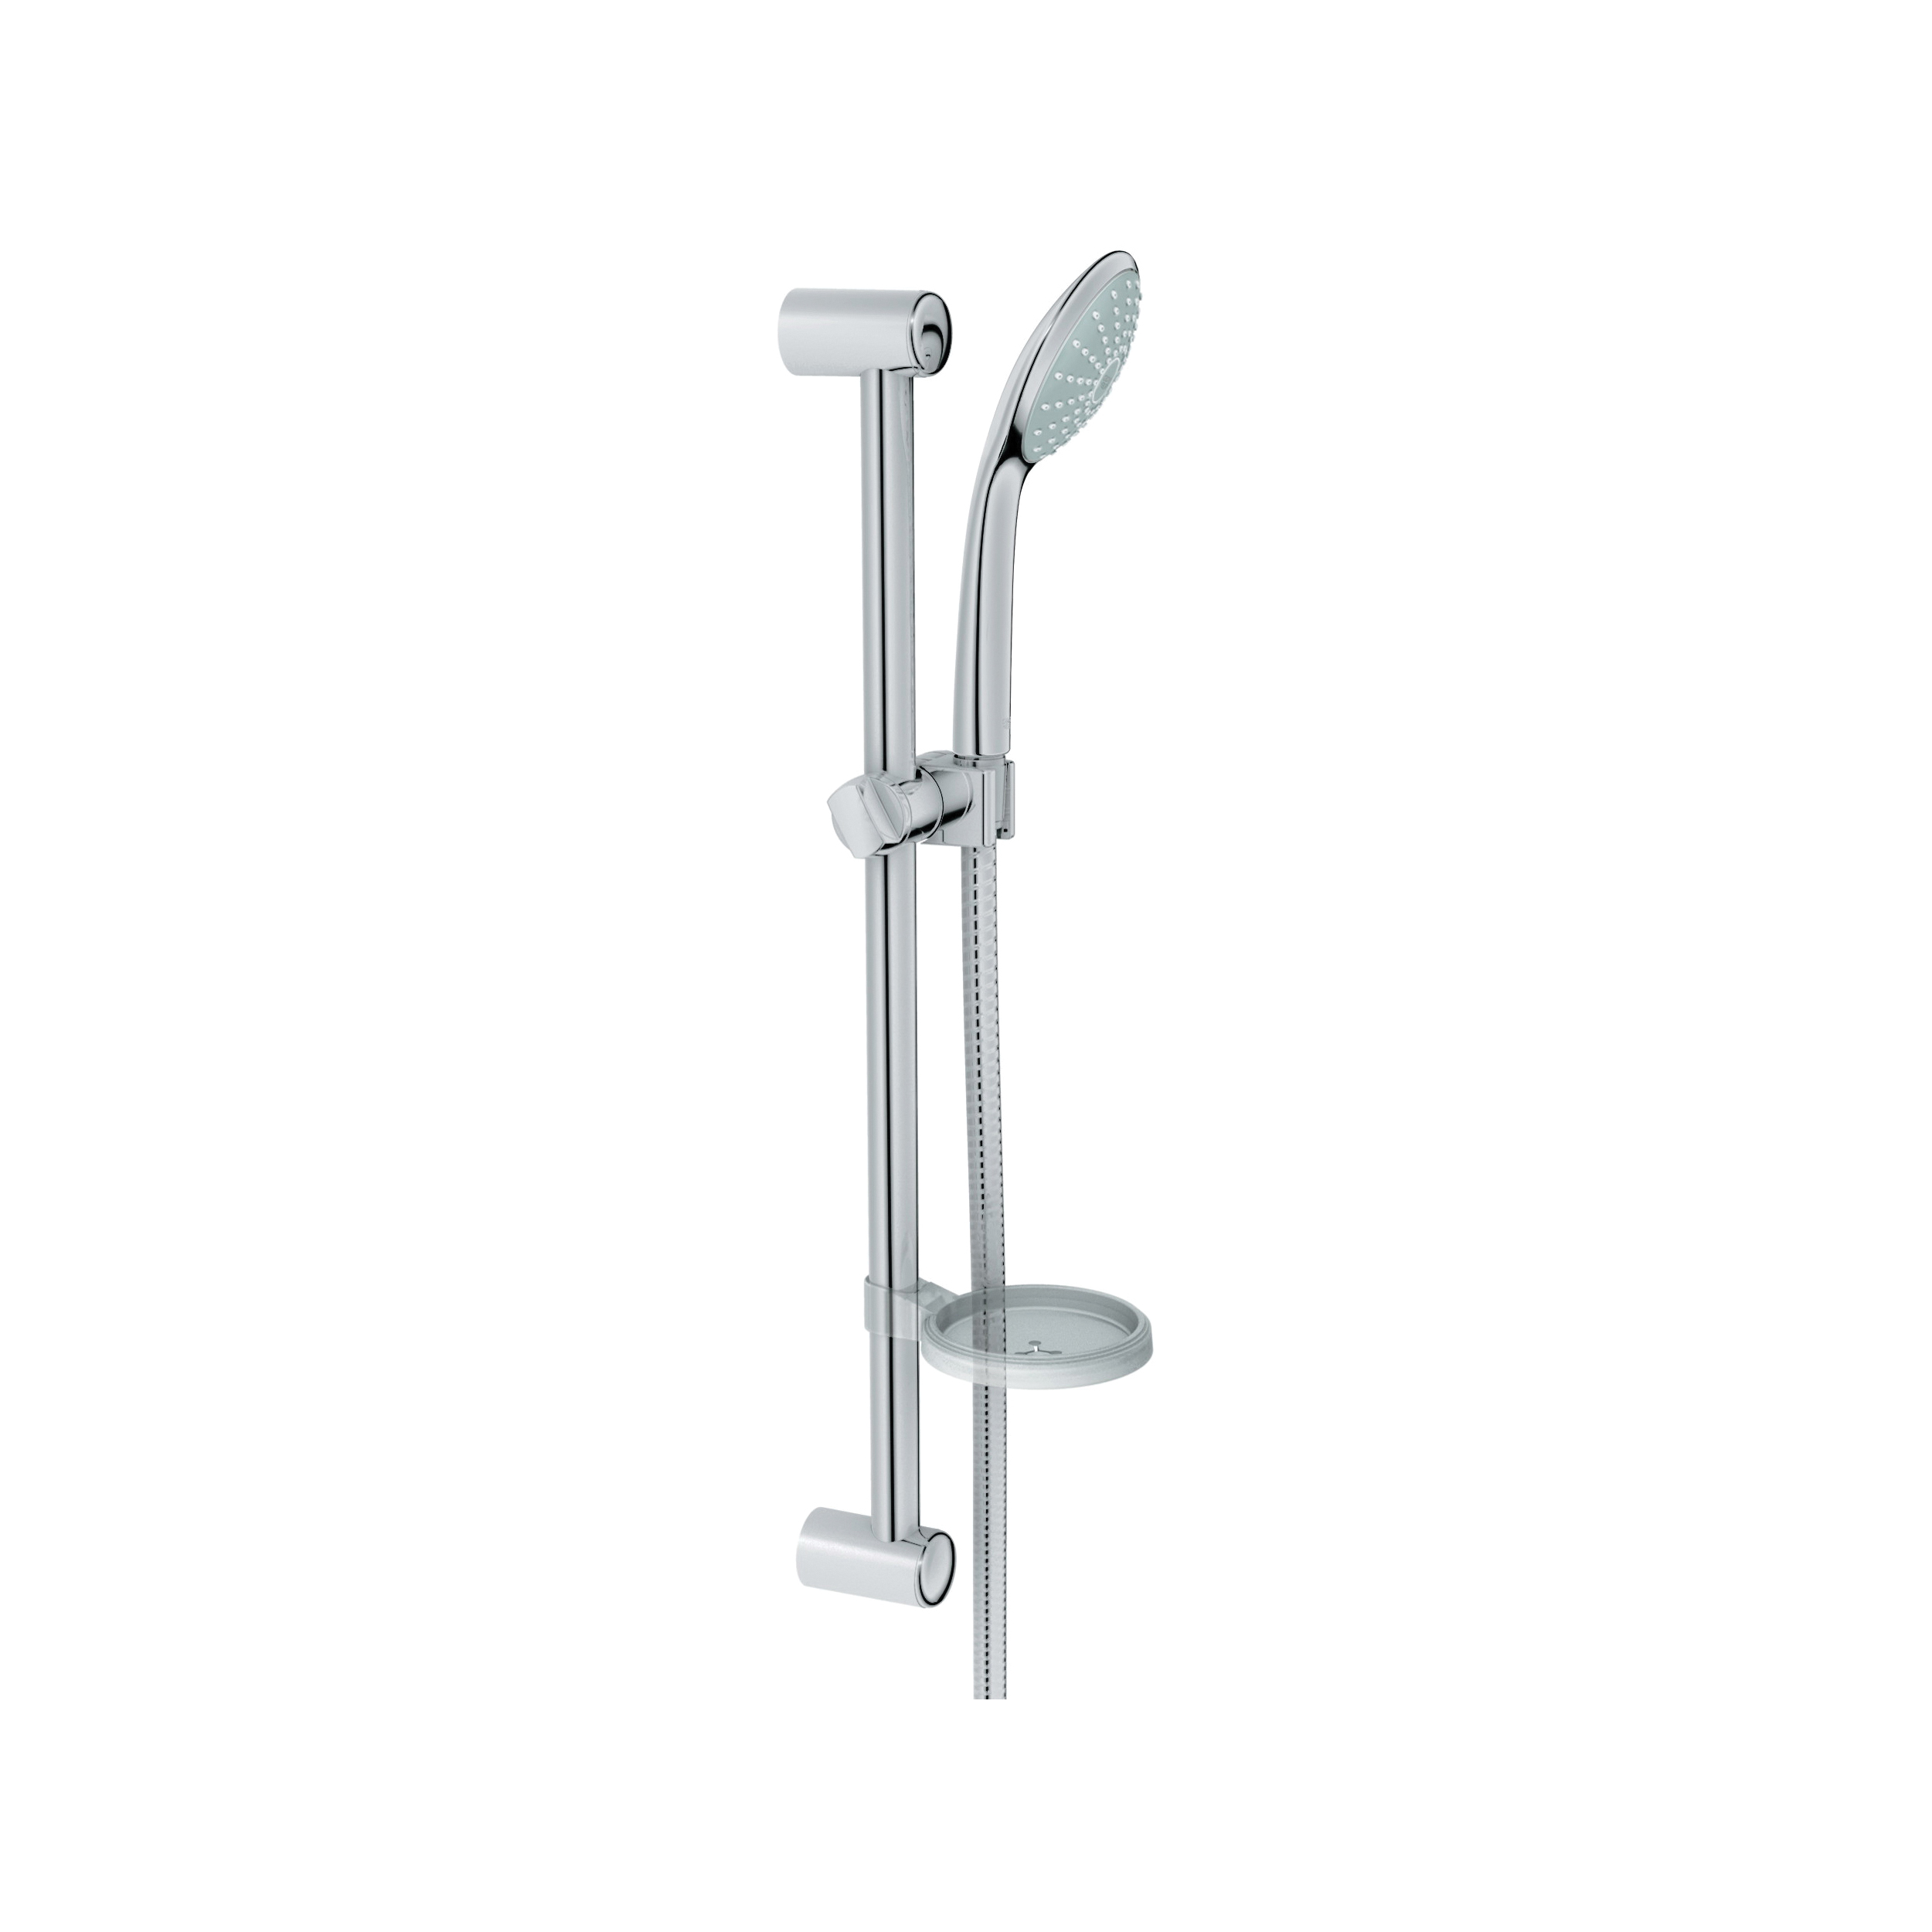 GROHE 2726600E Euphoria 110 Mono Shower Set, 4-5/16 in Dia, 1.5 gpm, 69 in L Hose, G-1/2, Slide Bar: Yes, Chrome Plated, Import